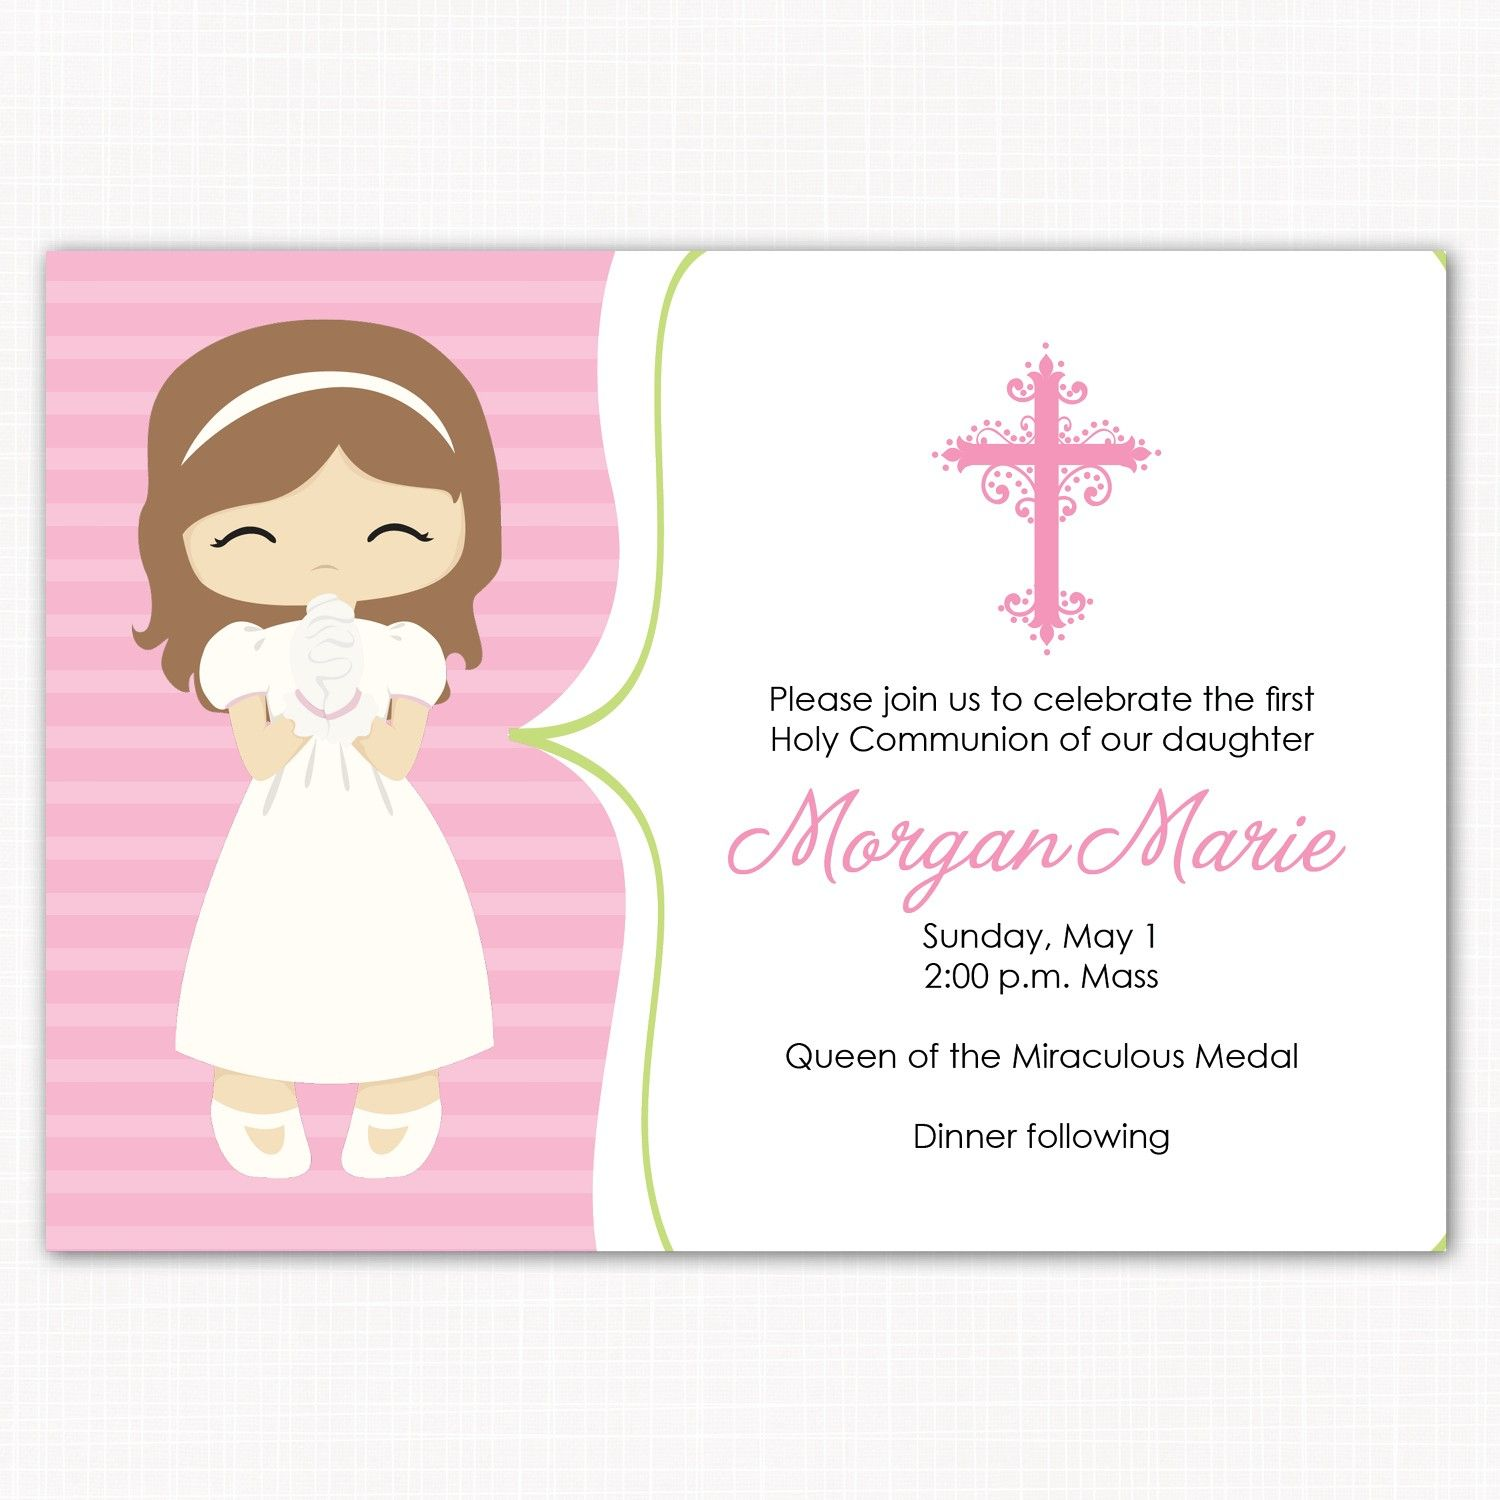 First Communion Invitation Sweet Girl 15 00 Via Etsy 1era